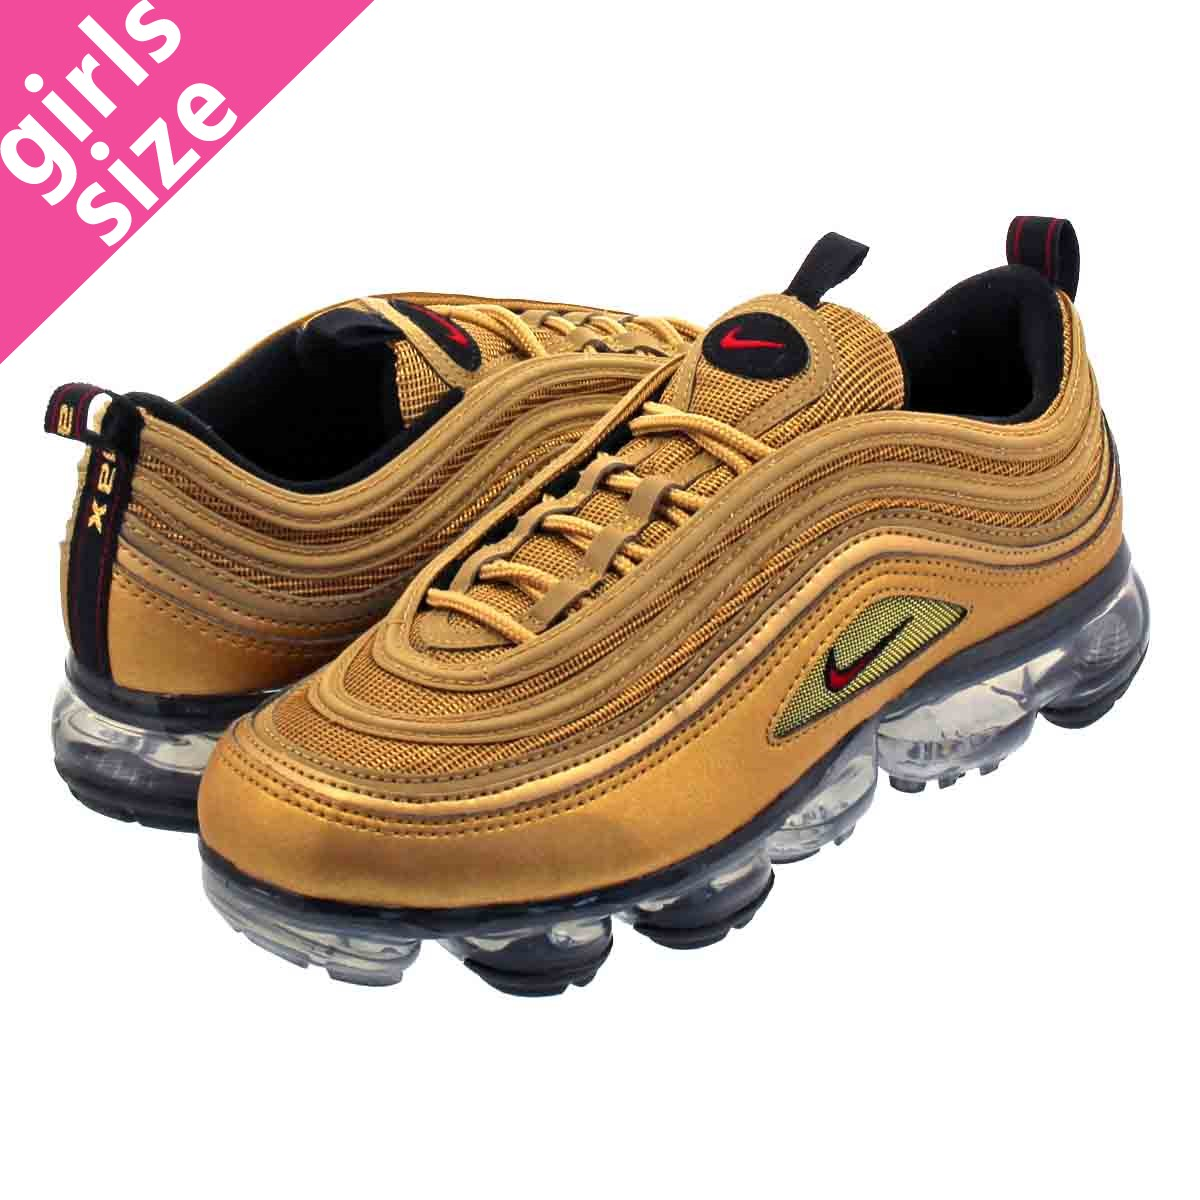 promo code 1fcde bad40 NIKE AIR VAPORMAX 97 GS Nike air vapor max 97 GS METALLIC GOLD/VARSITY  RED/BLACK/WHITE aq2657-700